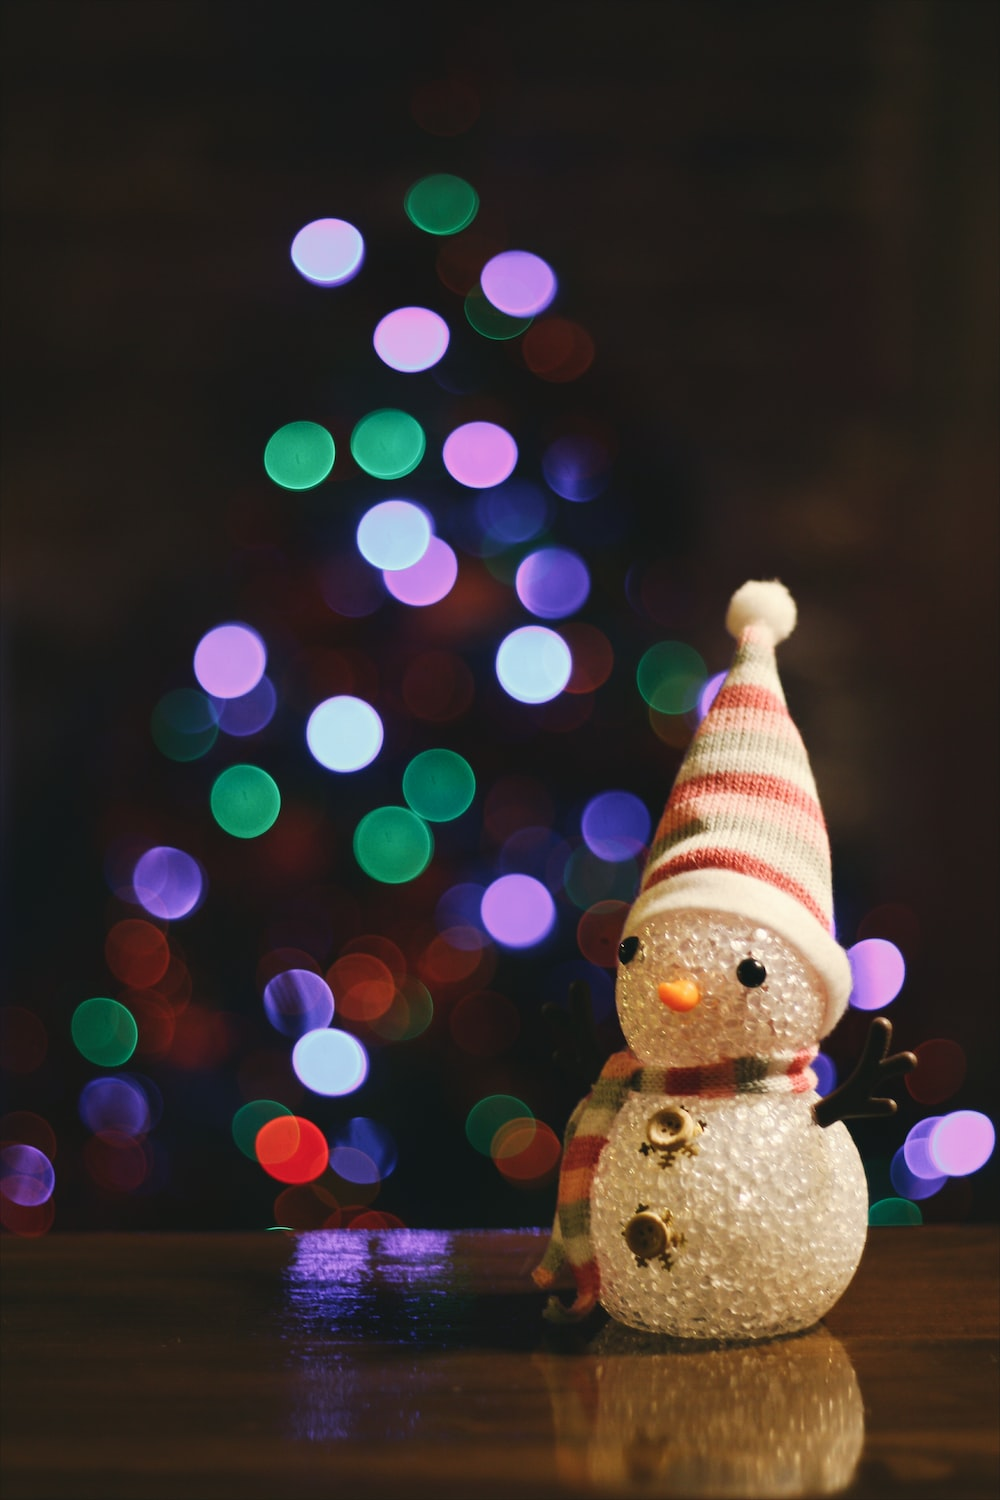 A little snowman figure sitting on the floor in front of a Christmas tree.